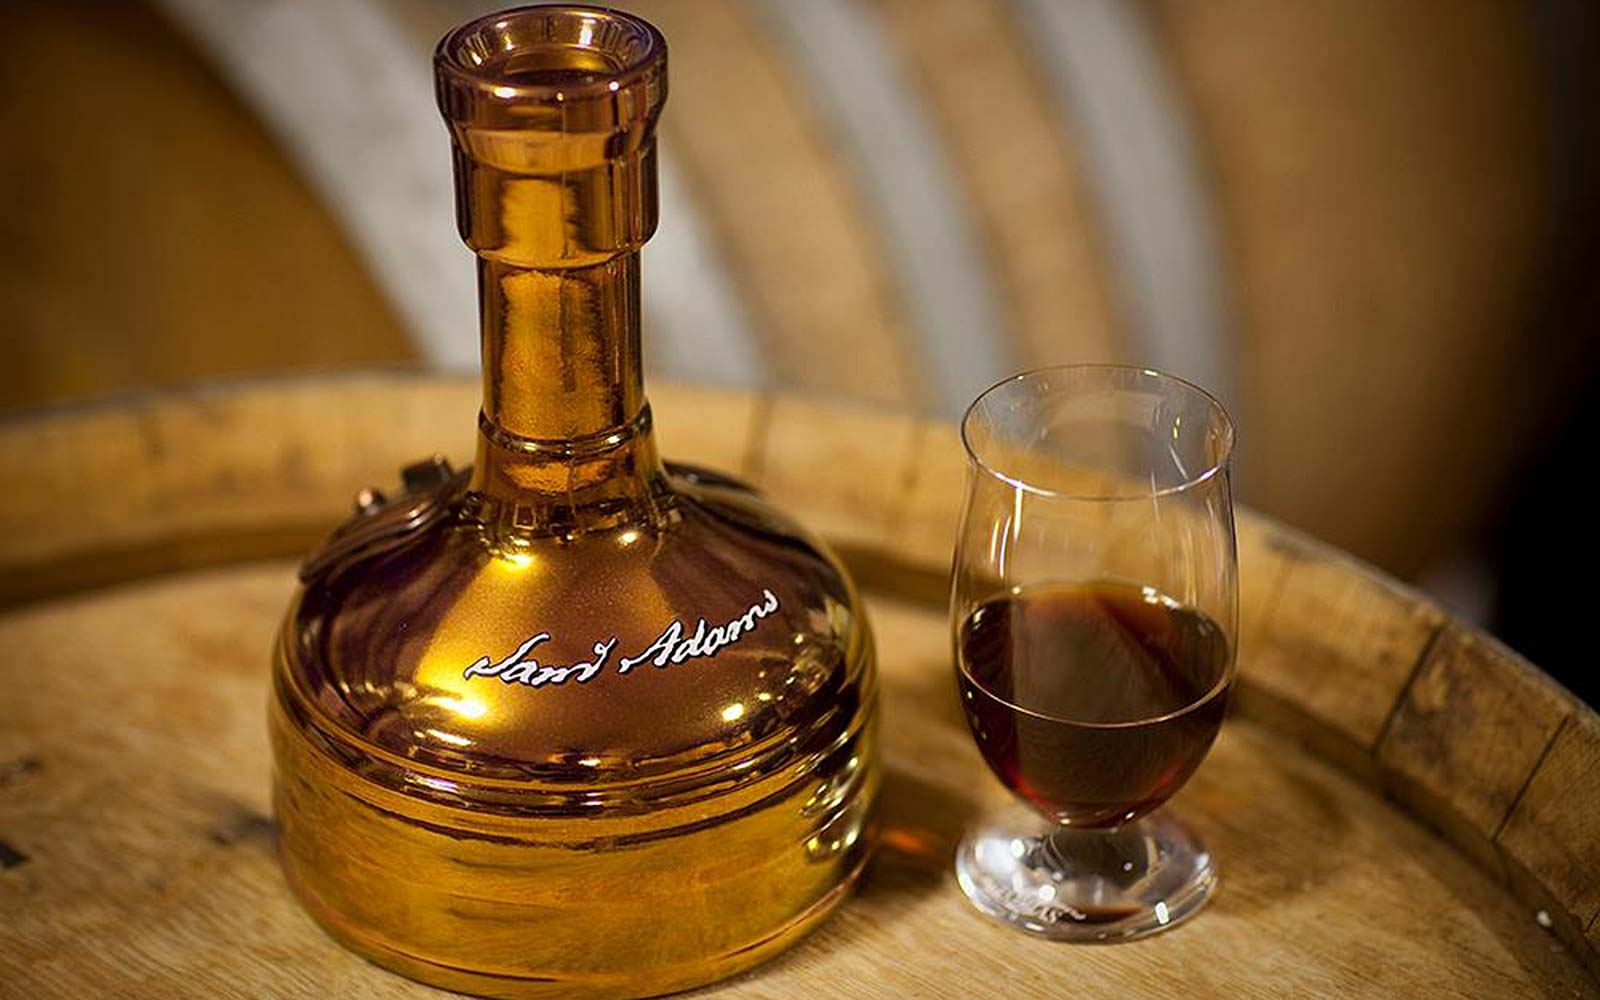 Samuel Adams' New $200 Beer Is So Strong It's Illegal in 12 States